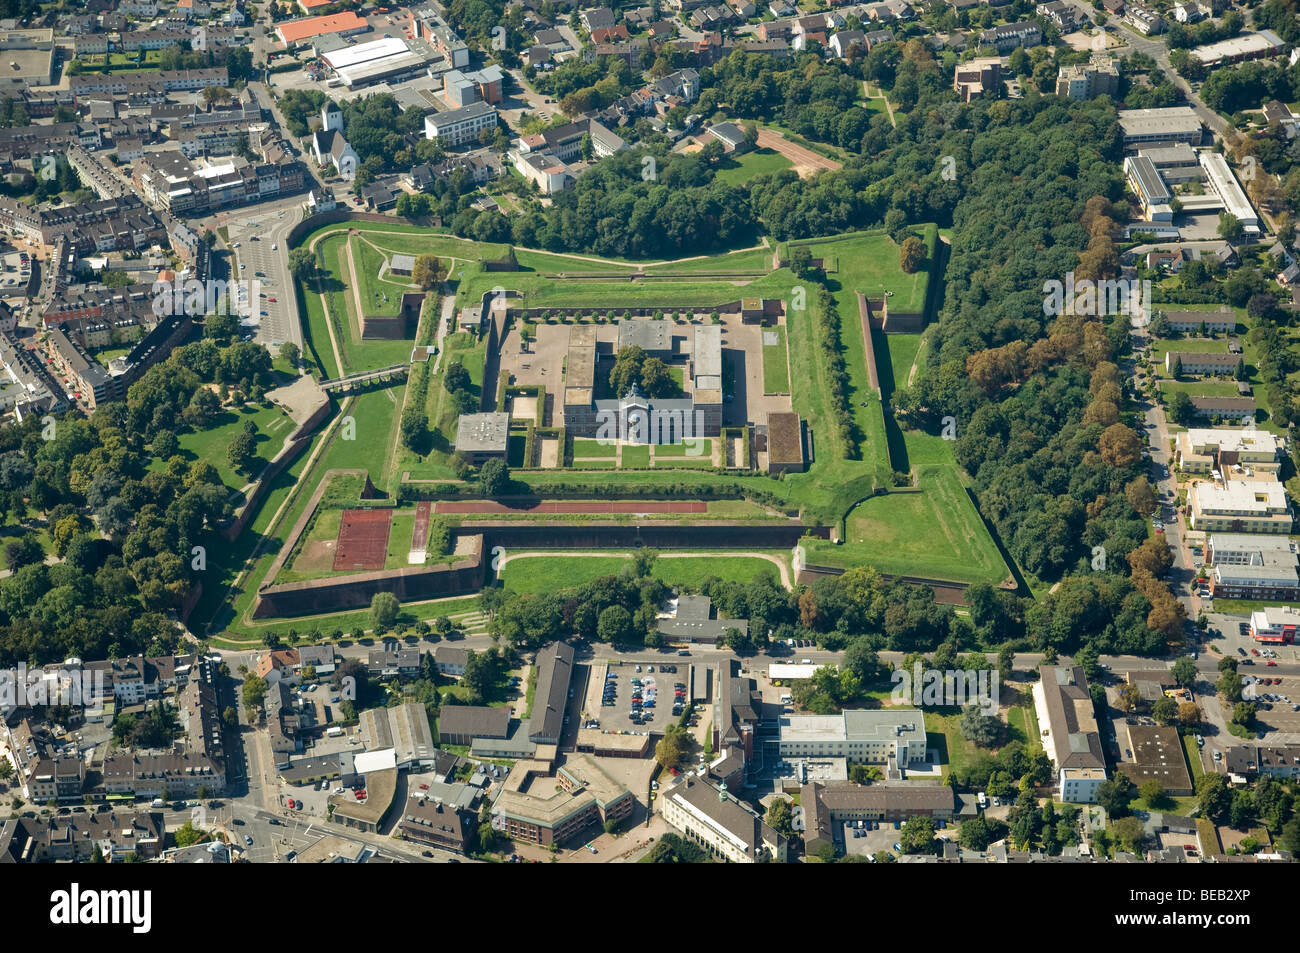 aerial photo of citadel Juelich, Germany - Stock Image